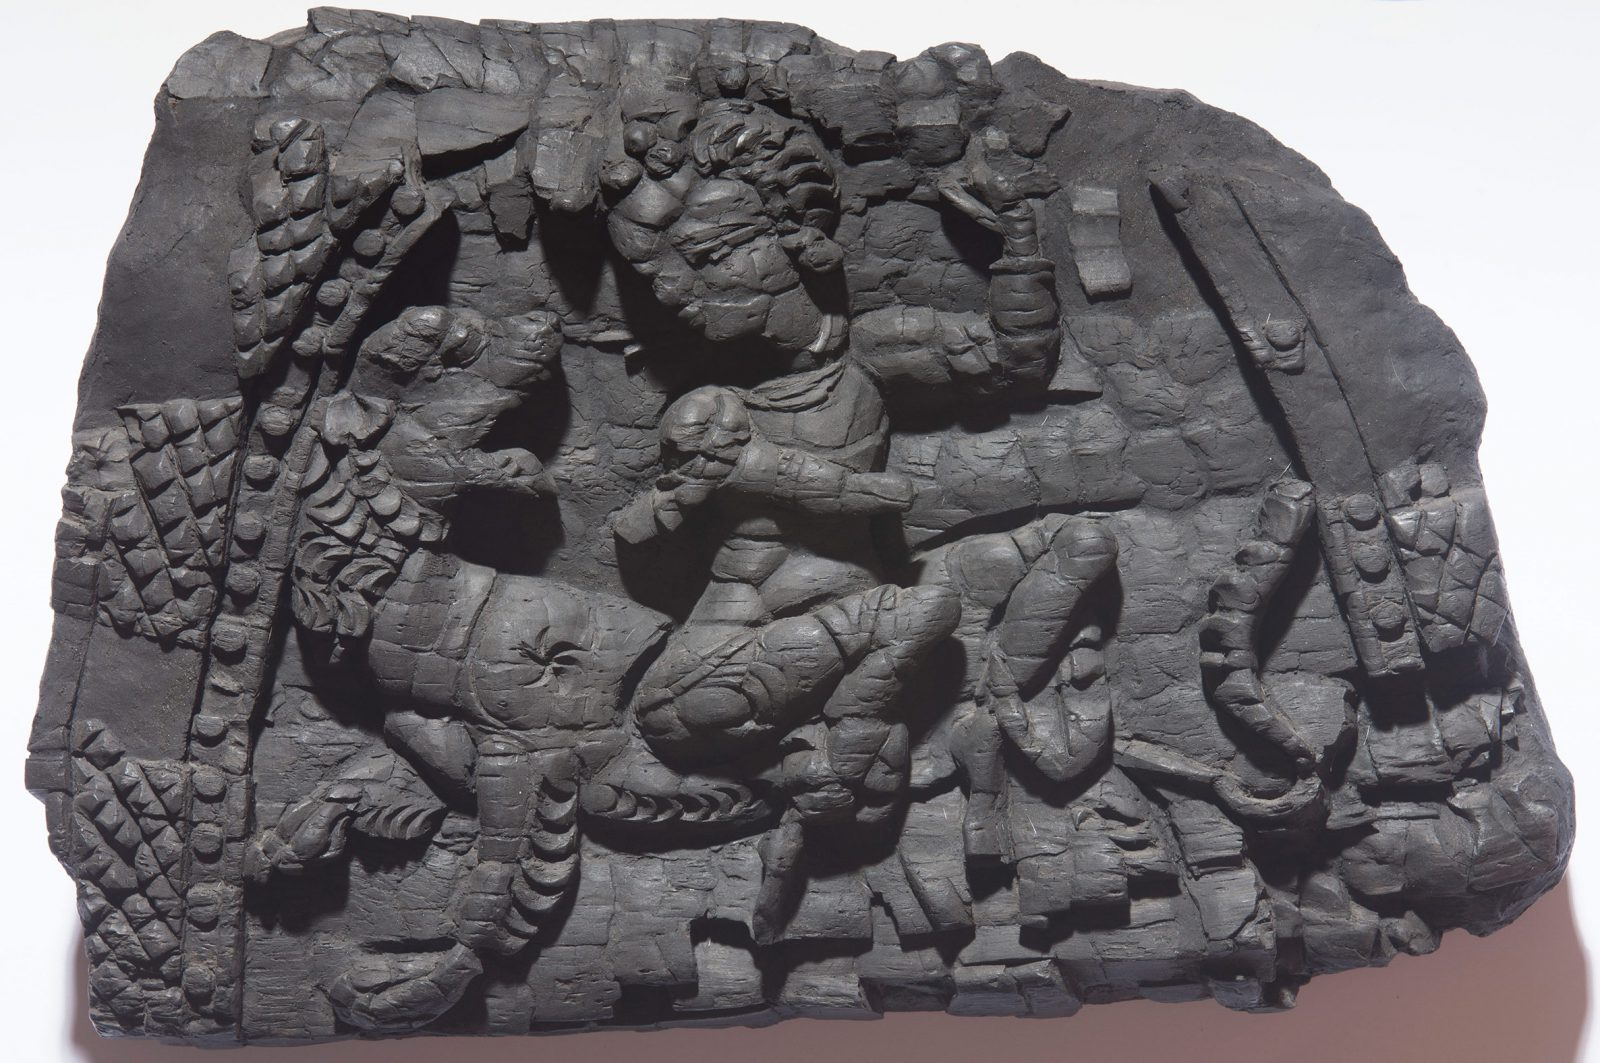 Wooden panel in the shape of a half circle showing a female deity on a lion